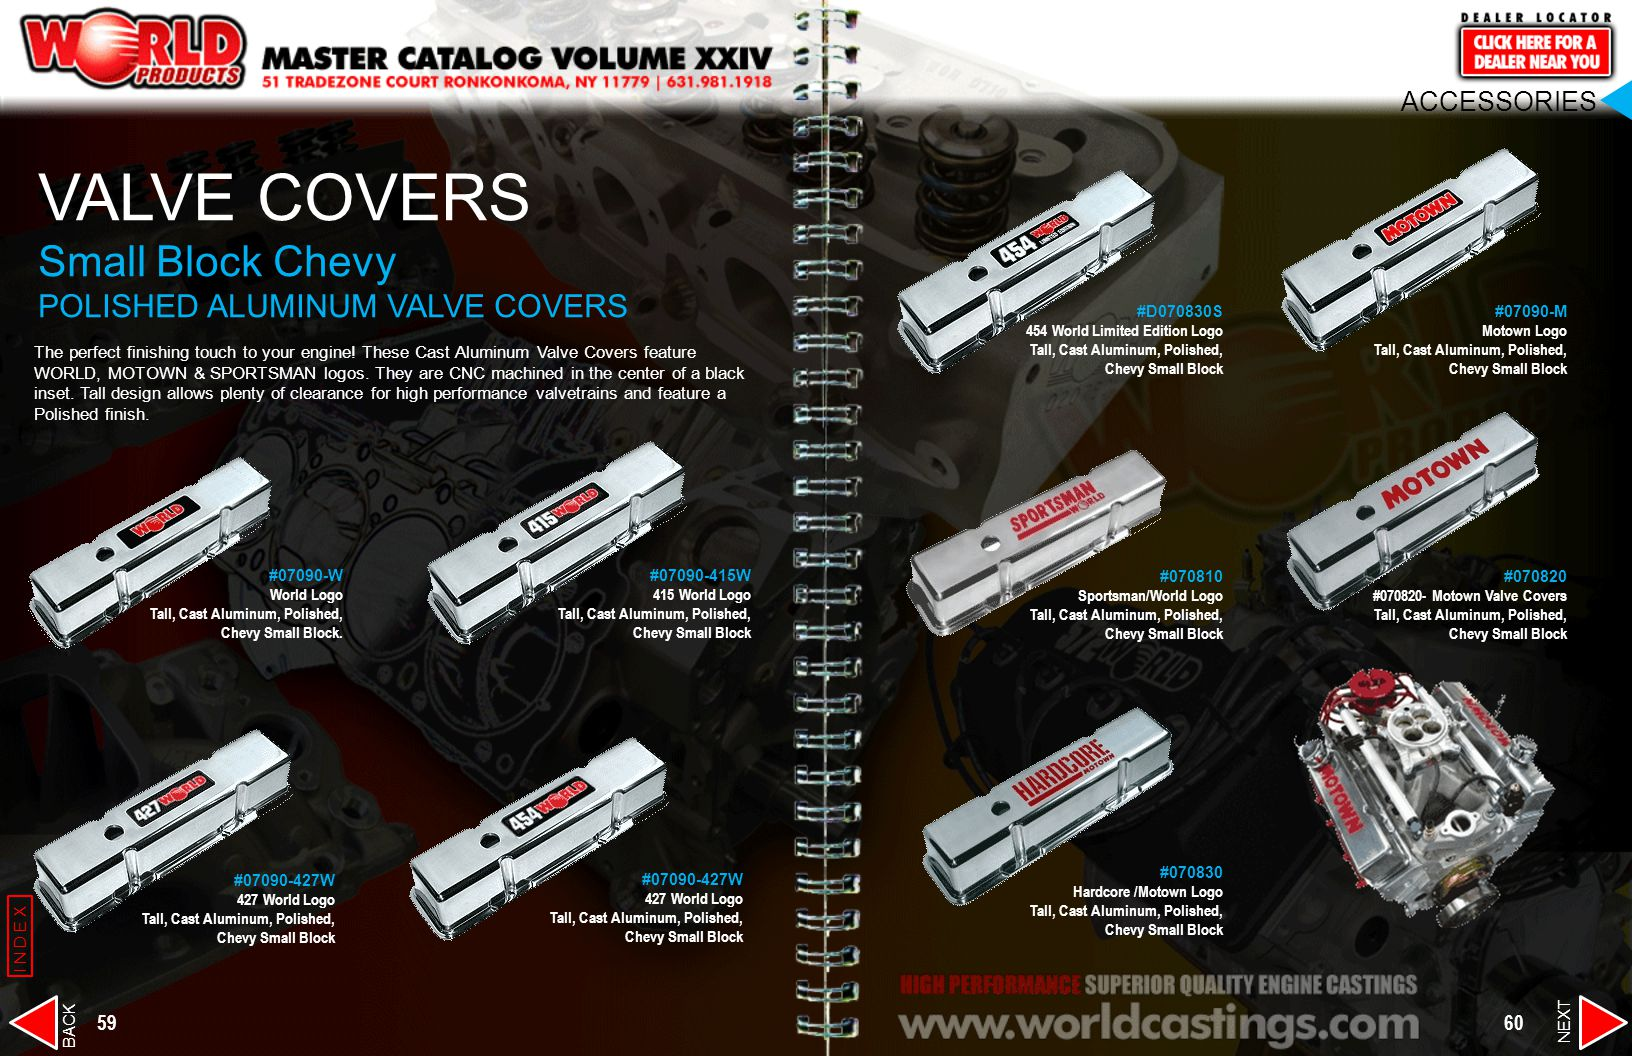 VALVE COVERS Small Block Chevy POLISHED ALUMINUM VALVE COVERS